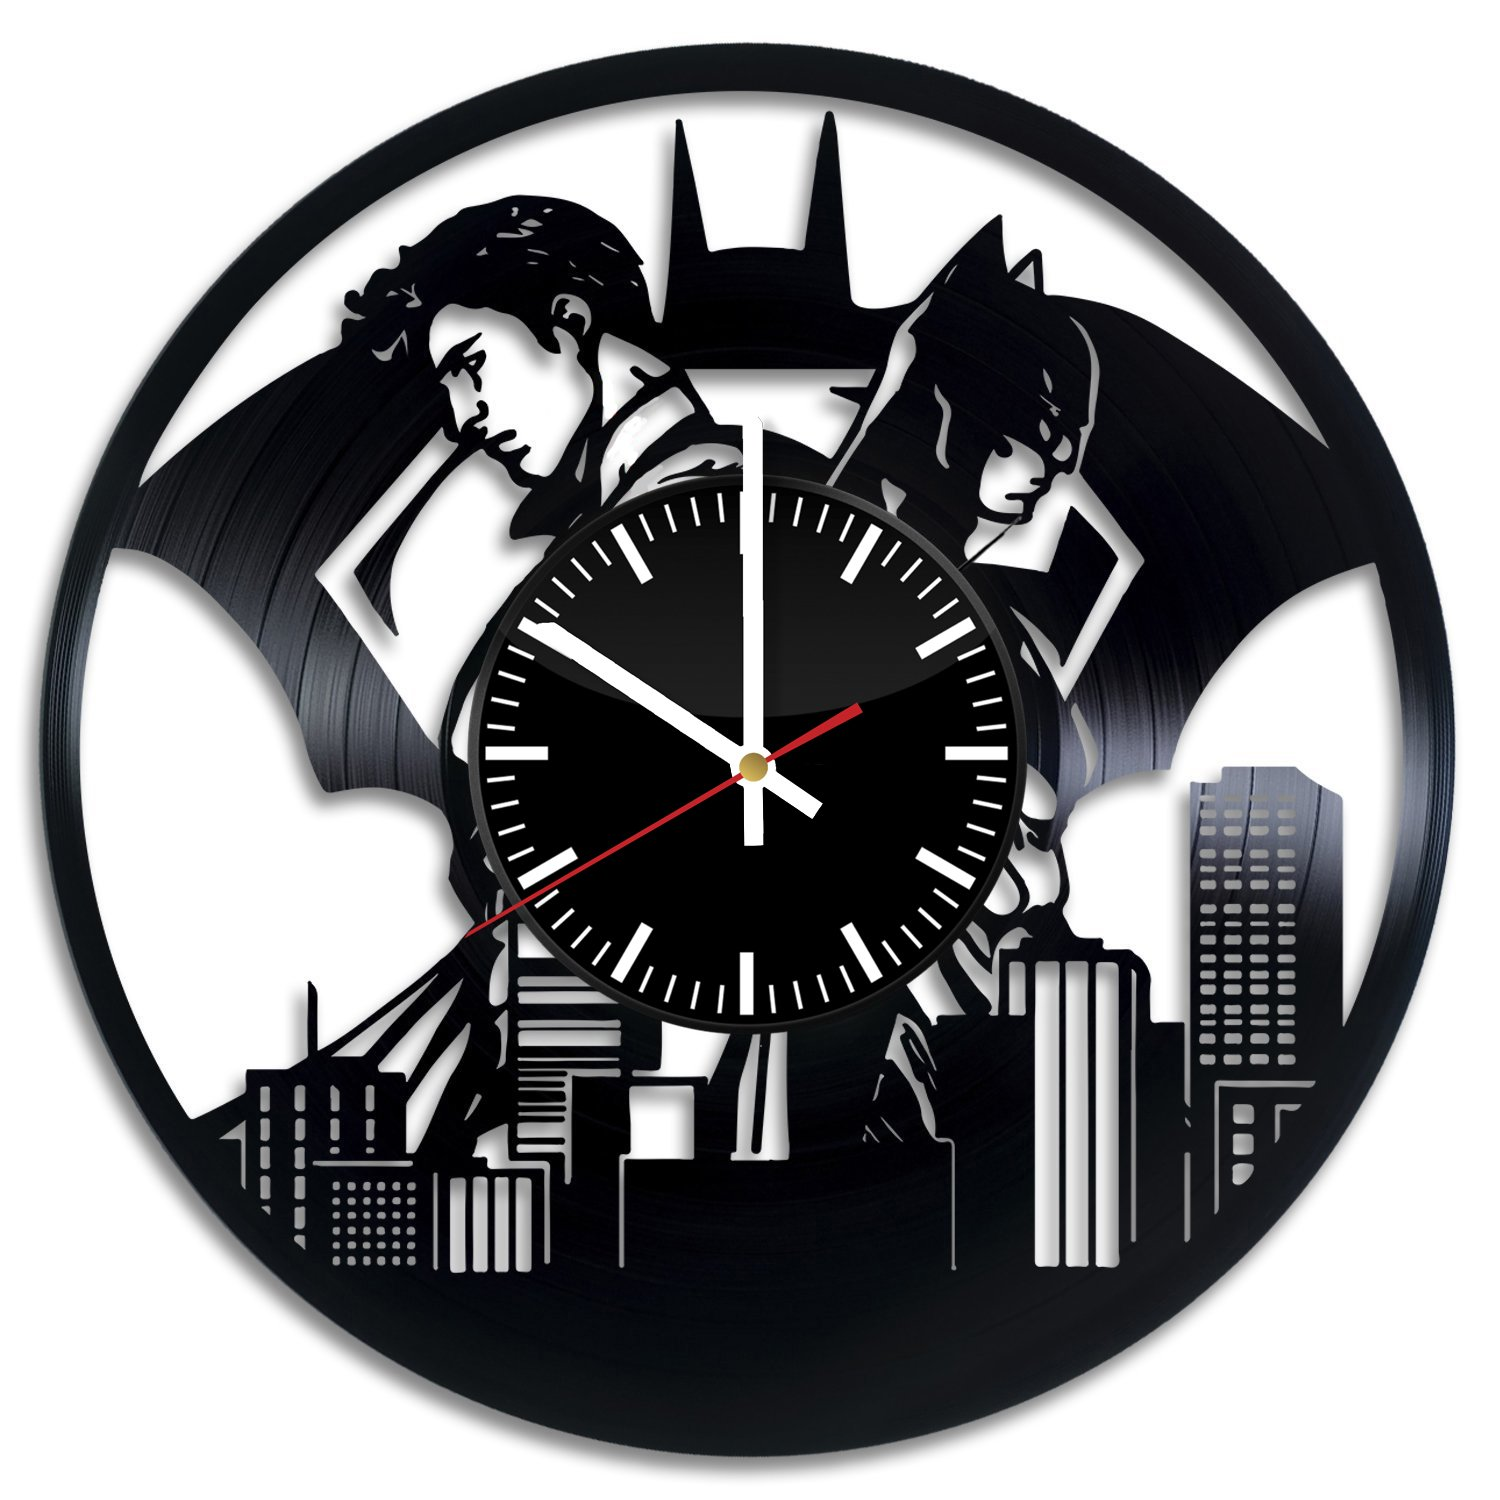 Welcome Everyday Arts Batman with Superman Design Vinyl Record Wall Clock - Get unique living room wall decor - Gift ideas for boys and girls – DC Comics Heroes Unique Modern Art by Welcome Everyday Arts